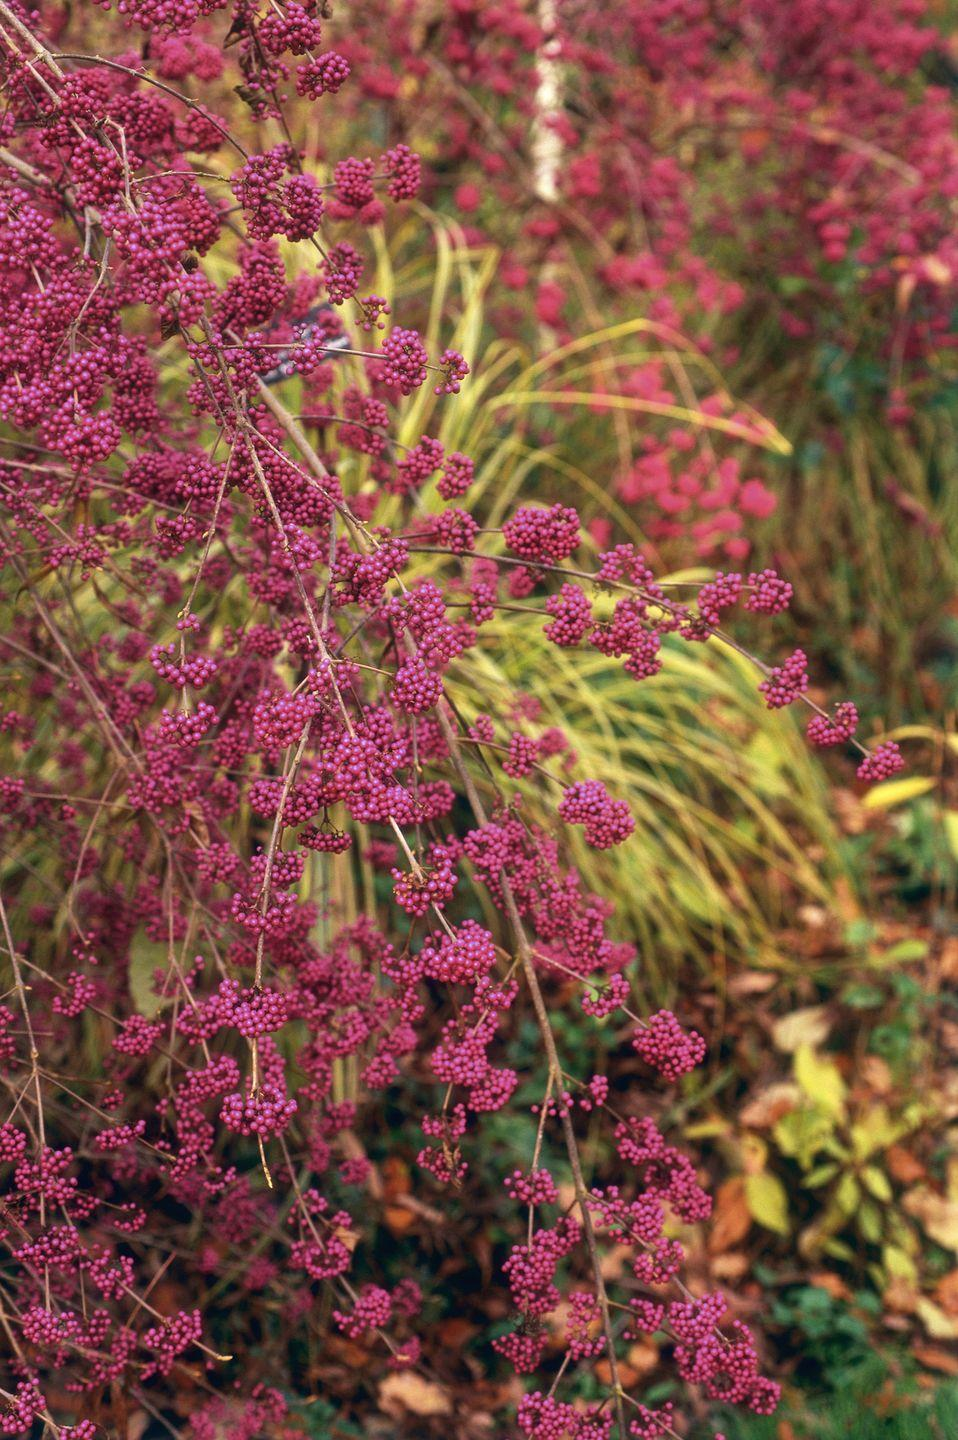 """<p>Beautiful in every season, these <a href=""""https://www.wildflower.org/plants/result.php?id_plant=caam2"""" rel=""""nofollow noopener"""" target=""""_blank"""" data-ylk=""""slk:fast-growing shrubs"""" class=""""link rapid-noclick-resp"""">fast-growing shrubs</a> with lilac-like flowers and purple berries last into winter. The seeds and berries of beautyberry often attract other guests including birds and white-tailed deer. </p><p><strong>When it blooms: </strong>Fall</p><p><strong>Where to plant:</strong> Full to partial sun</p><p><strong>When to plant:</strong> Spring or fall</p><p><strong>USDA Hardiness Zones:</strong> 7 to 11</p>"""